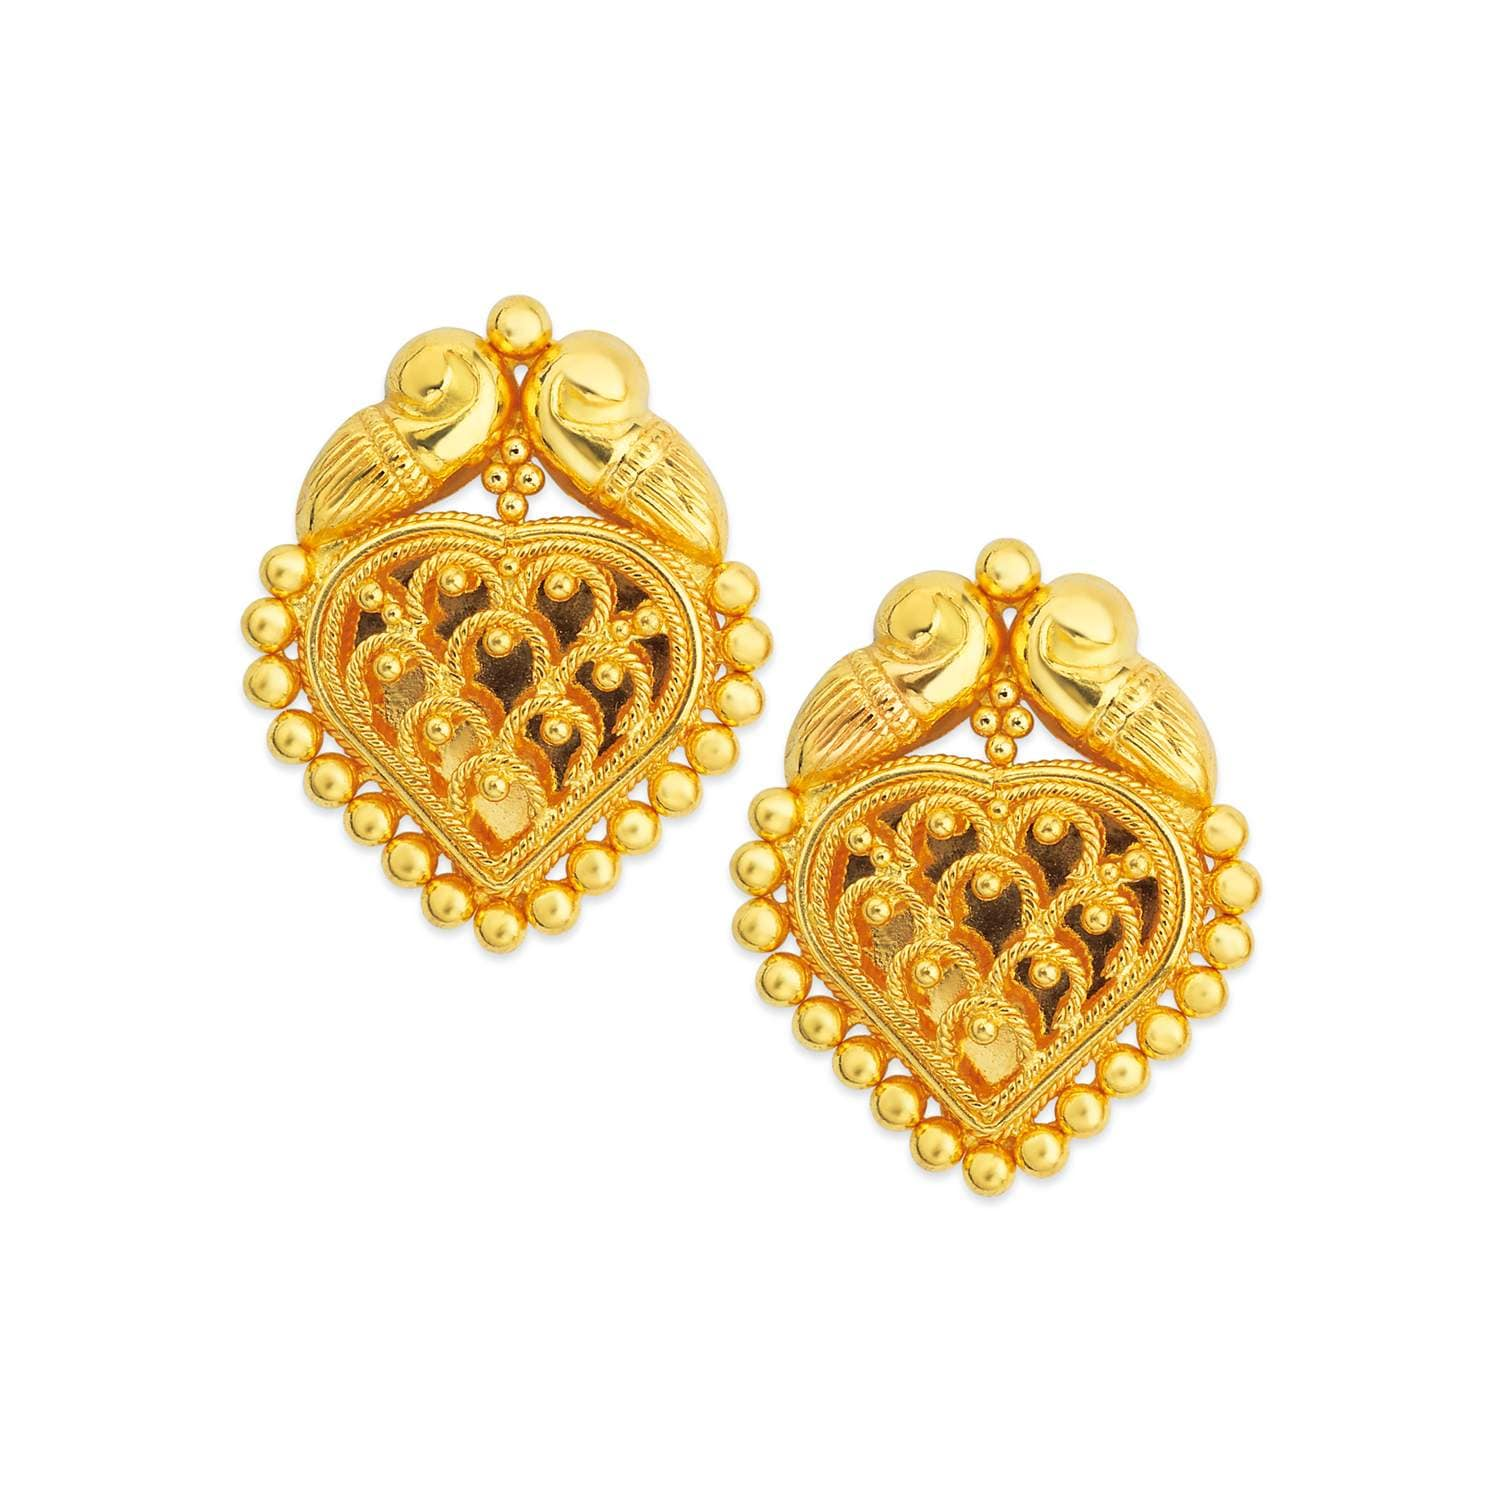 Buy Tanishq 22 KT Gold Stud Earring ID 510191SCAABA00 for ...